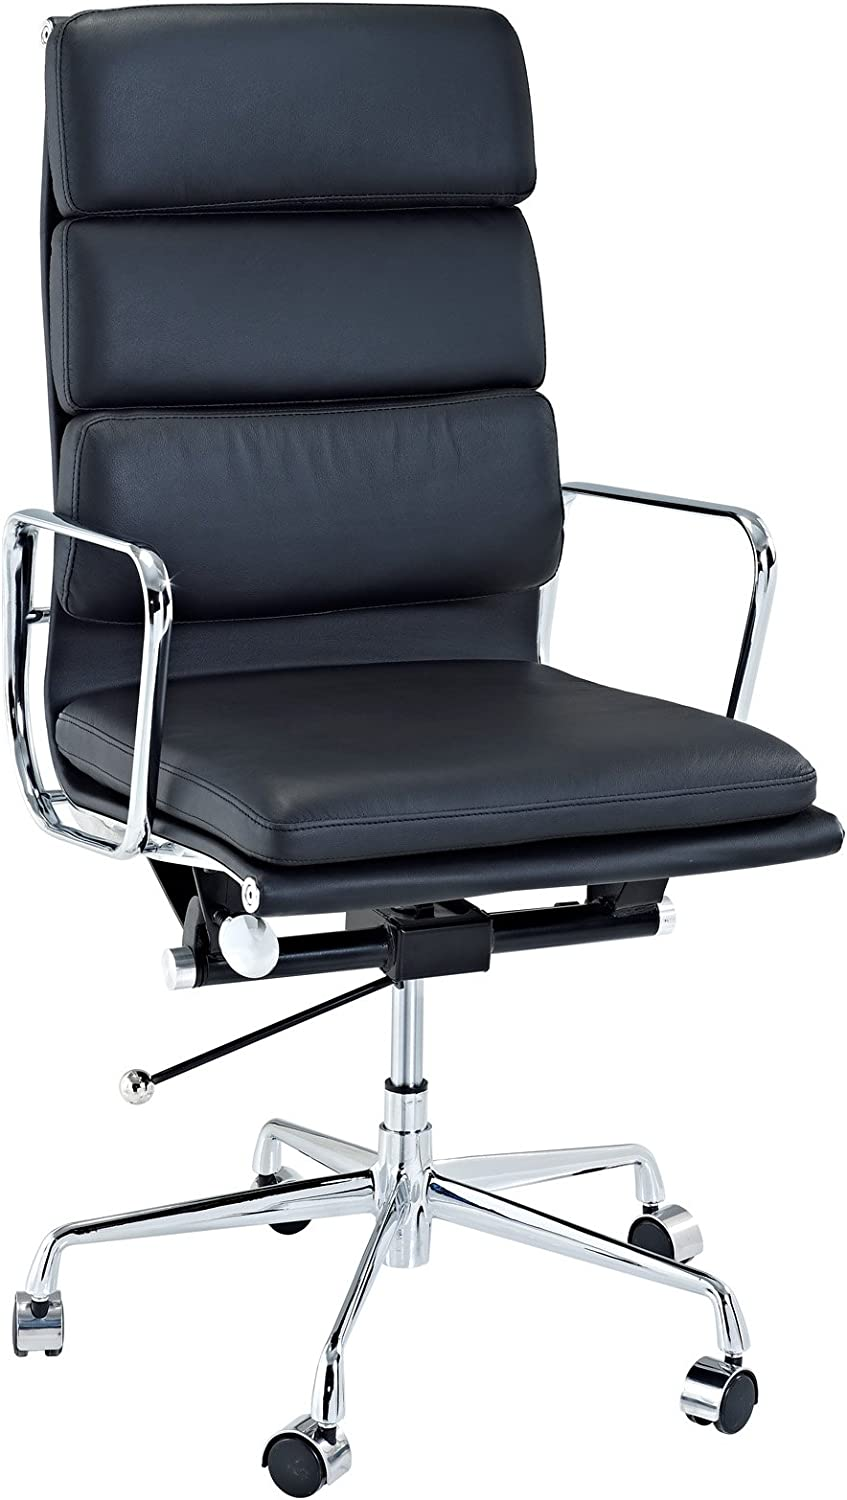 Modway Discovery High Back Leather Conference Office Chair in Black Genuine Leather